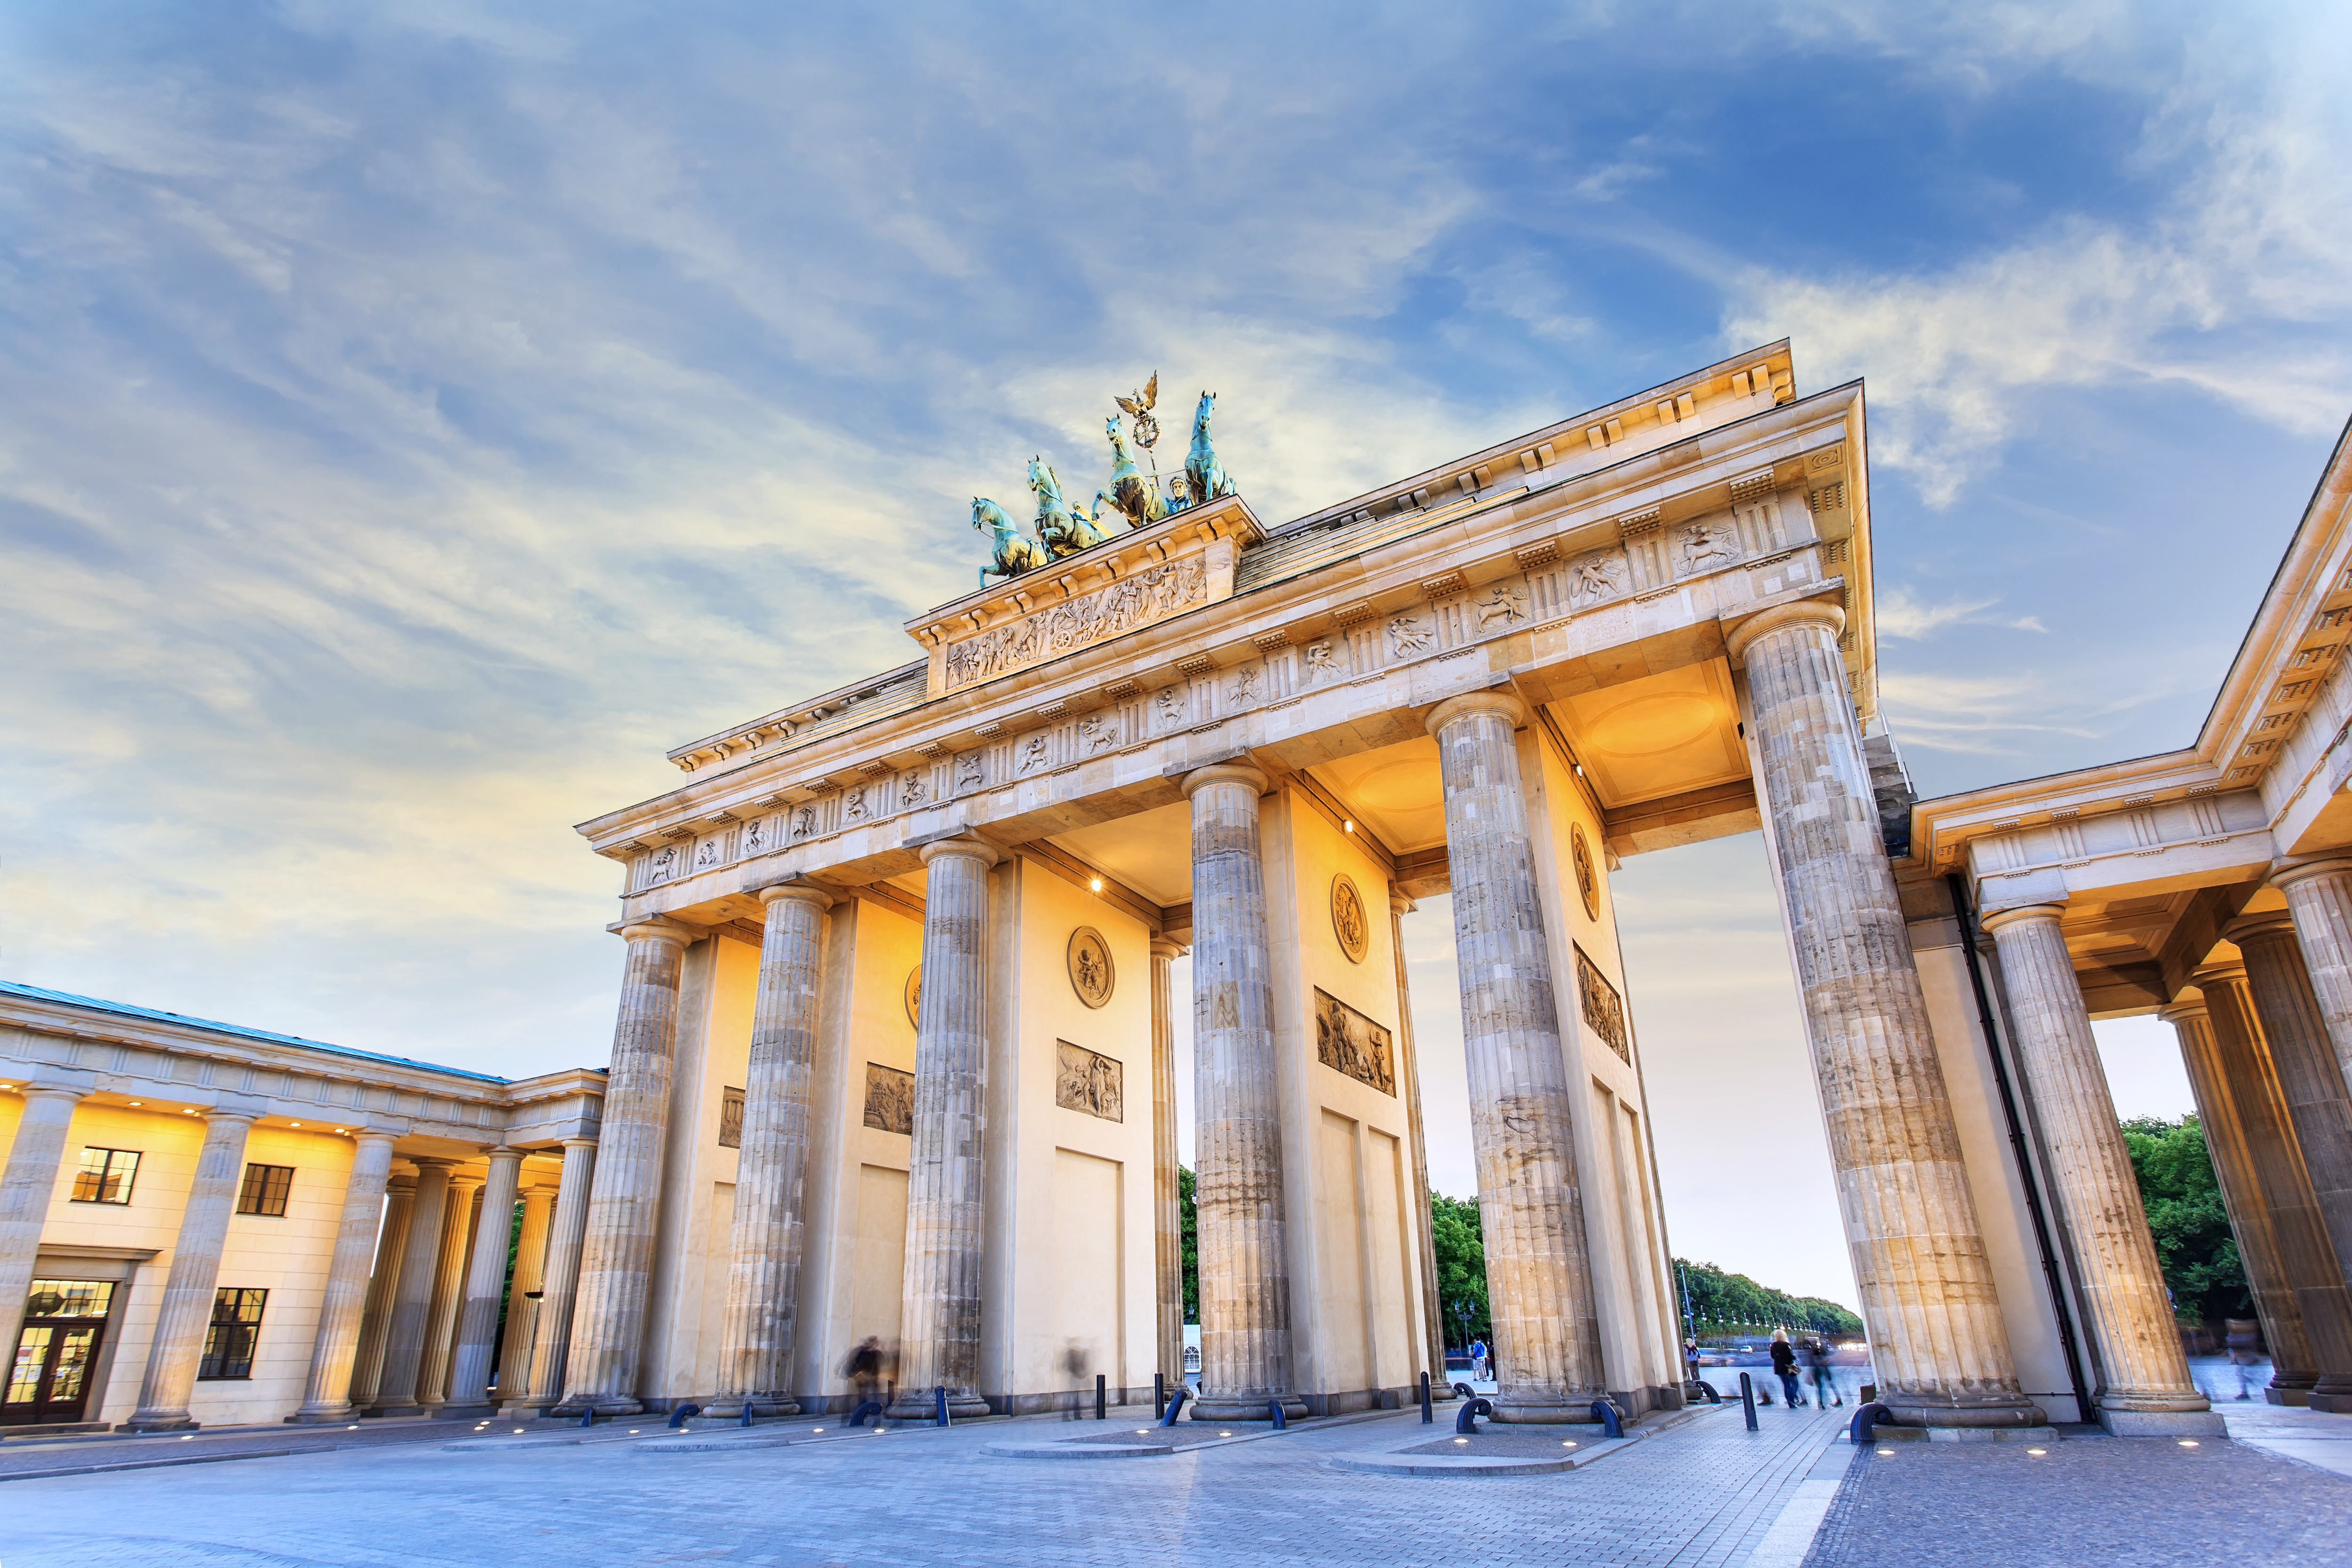 Fall in Love With These 5 German Cities